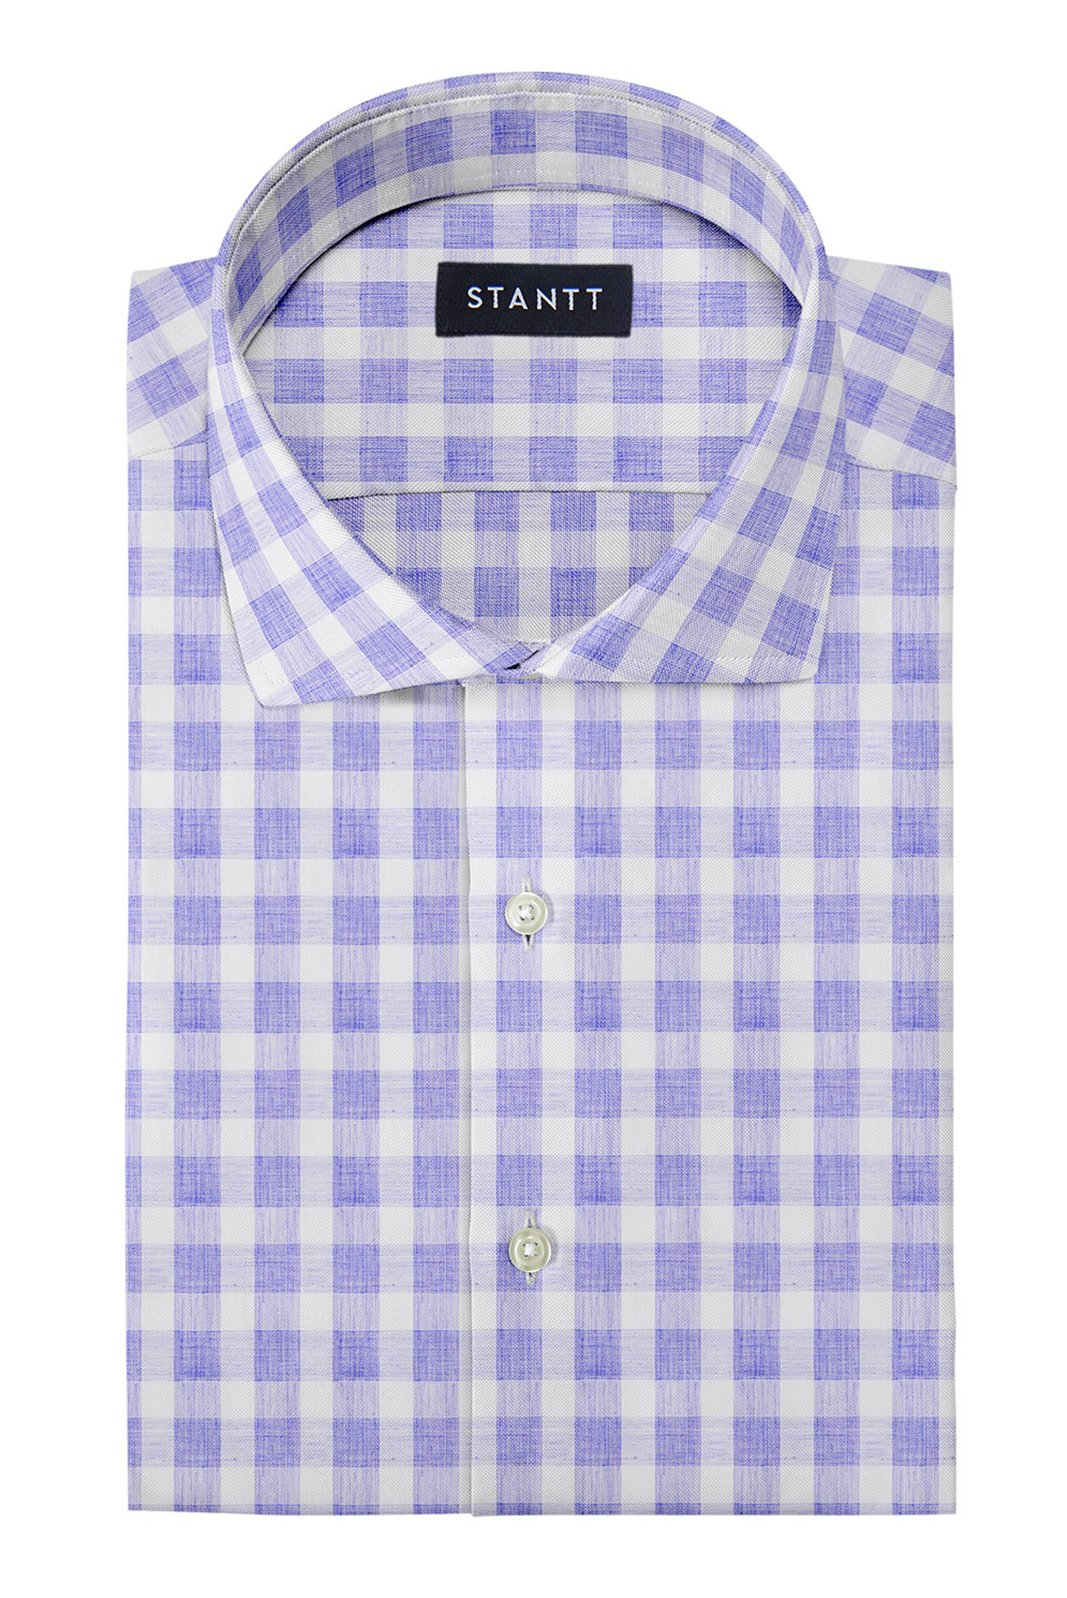 Heather Blue Buffalo Check: Cutaway Collar, French Cuff